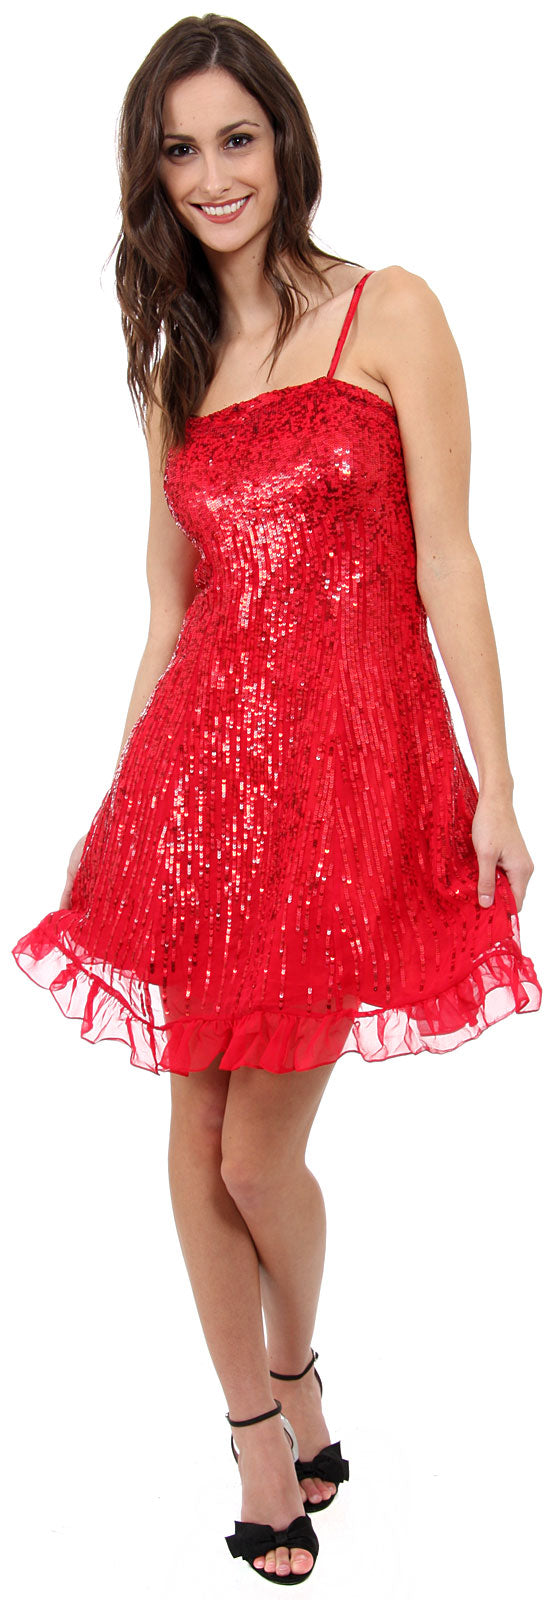 Image of Sequin Glittered Prom Dress in Red